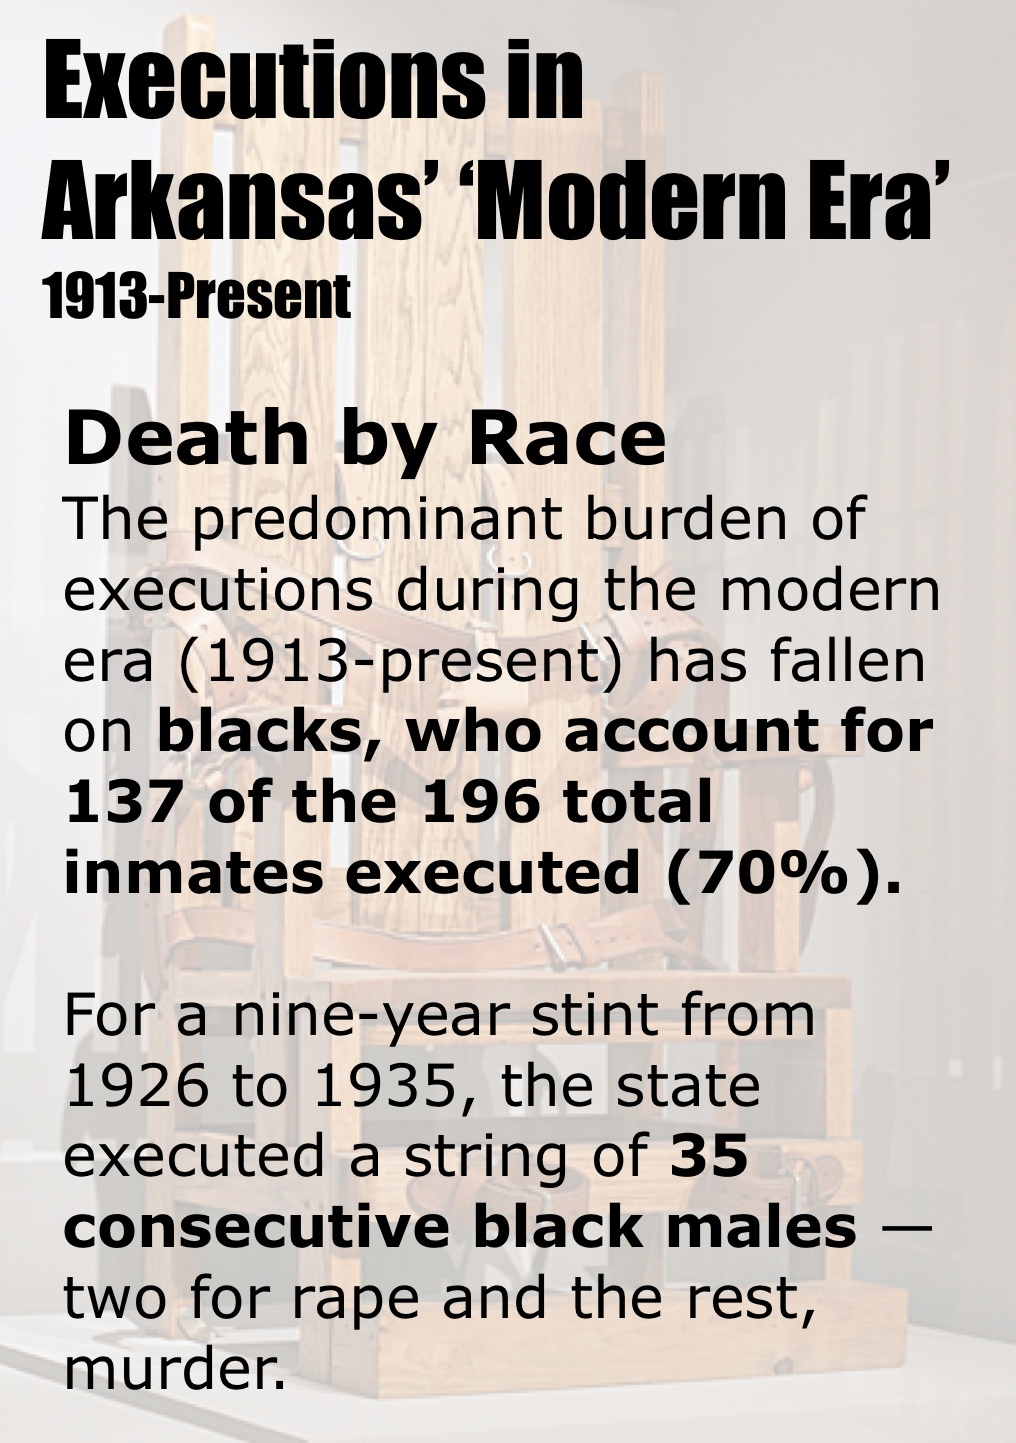 A century of death: 196 executions, 15 governors, and Arkansas